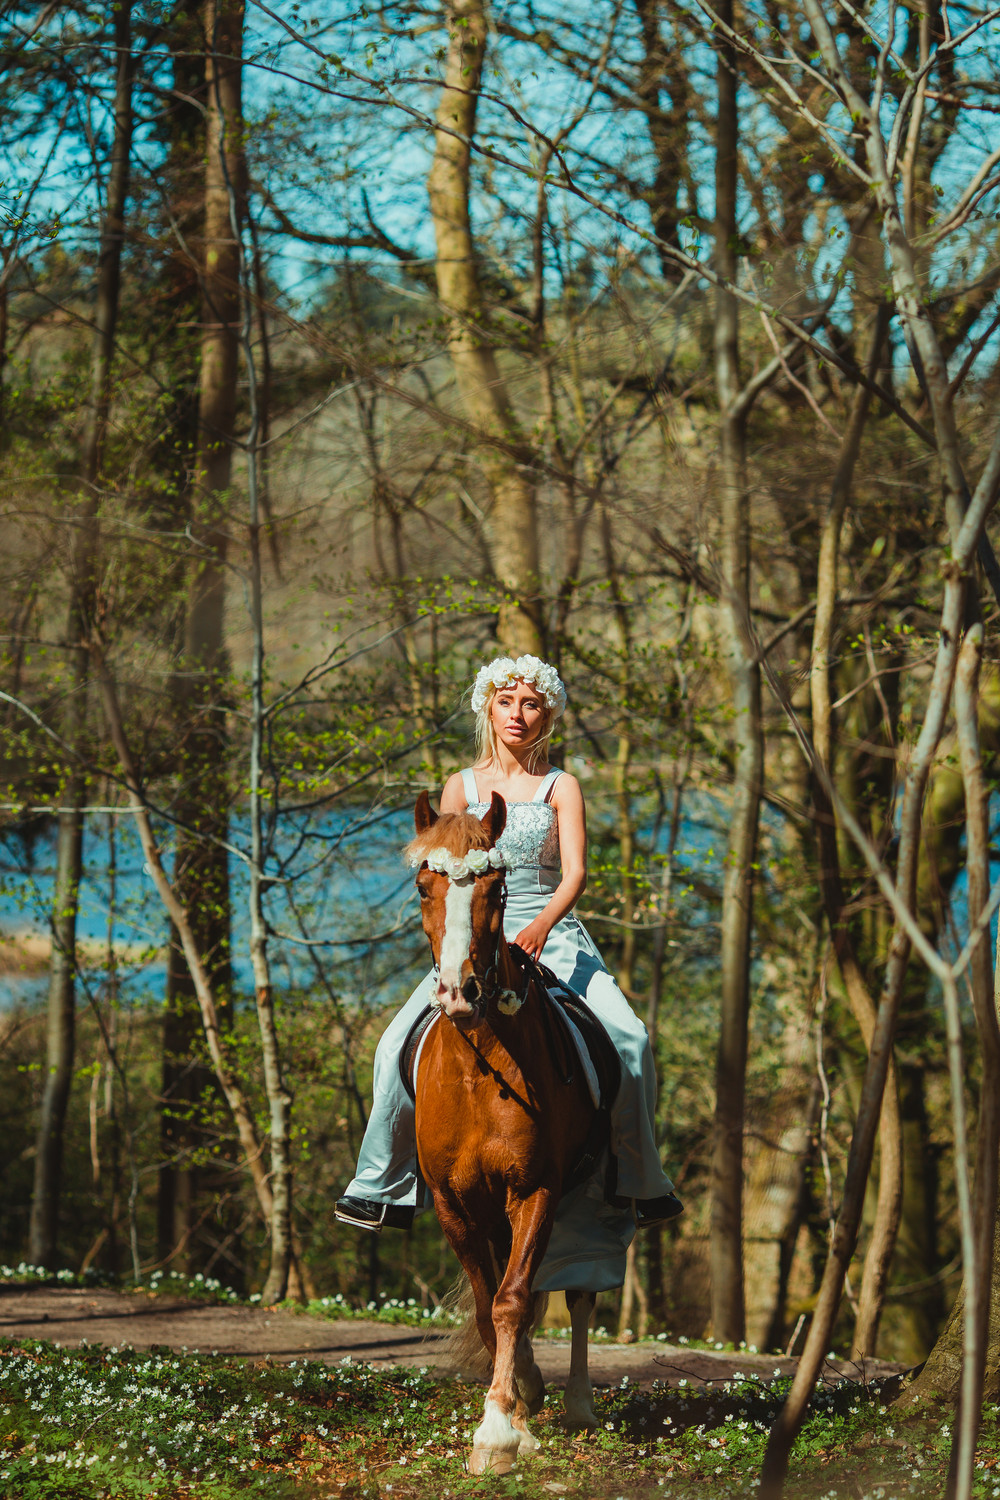 fairytale-horse-photography-cecilie-thorud05